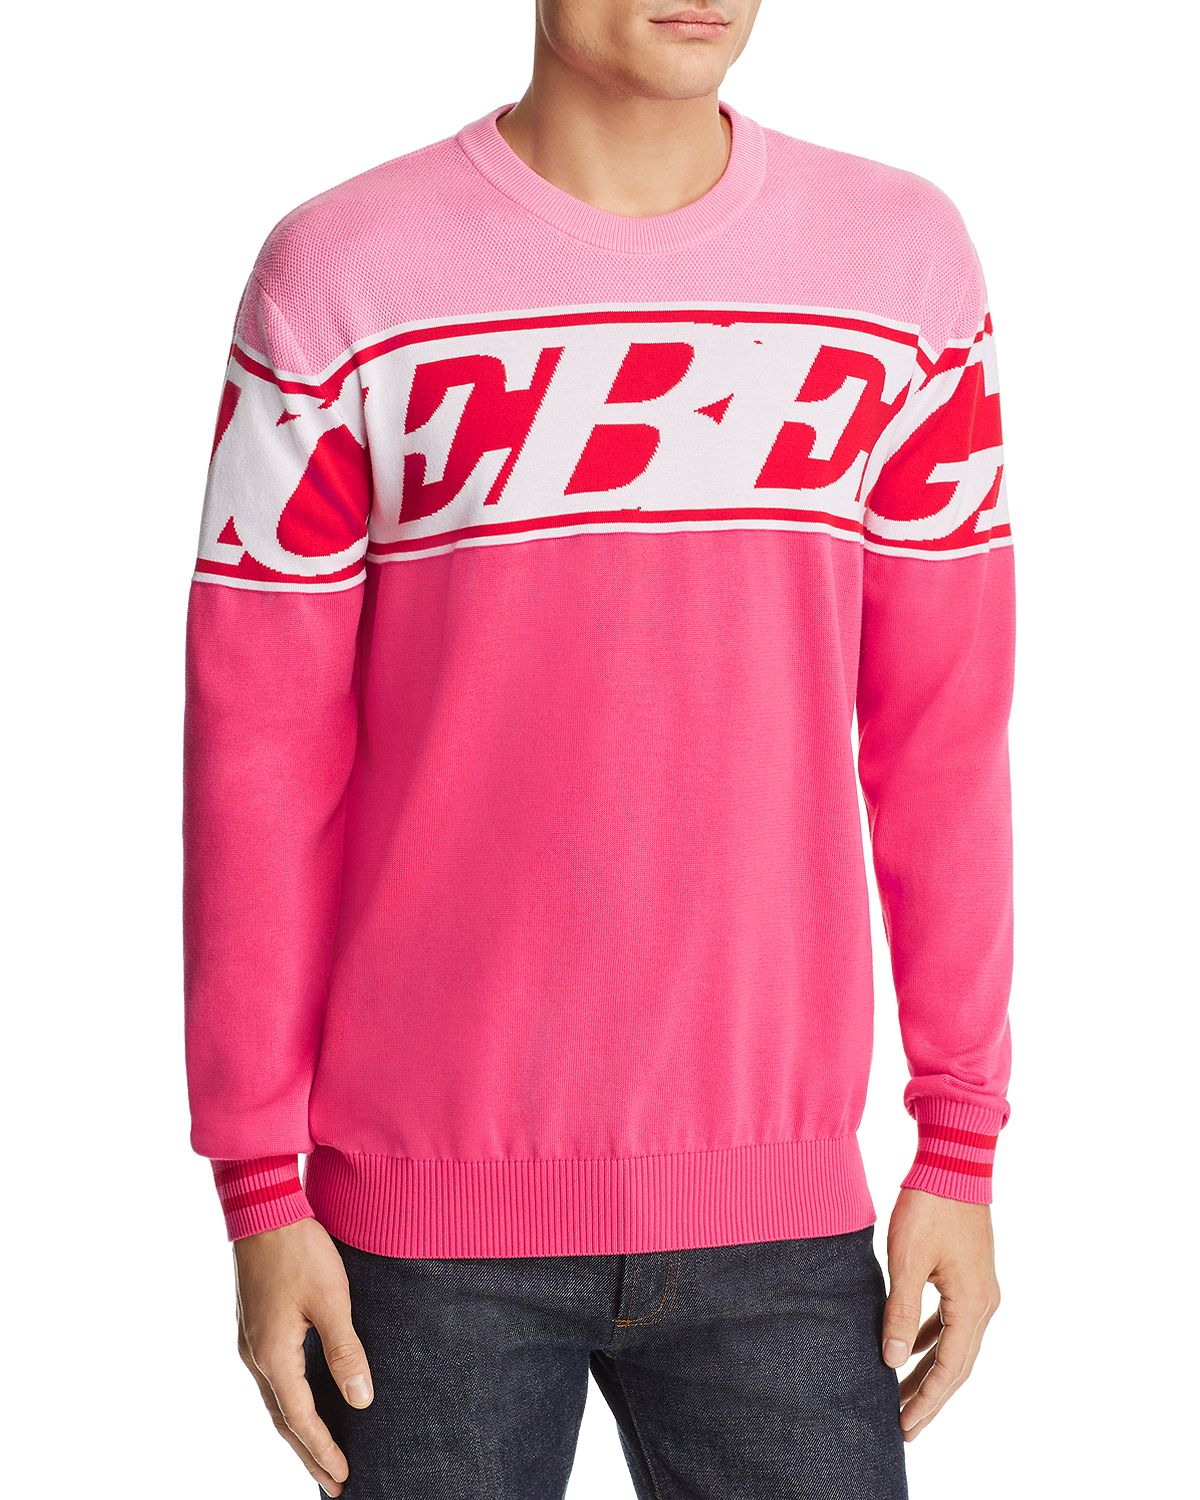 Iceberg Crewneck With Maxi-Logo A0187604 Pink/Red